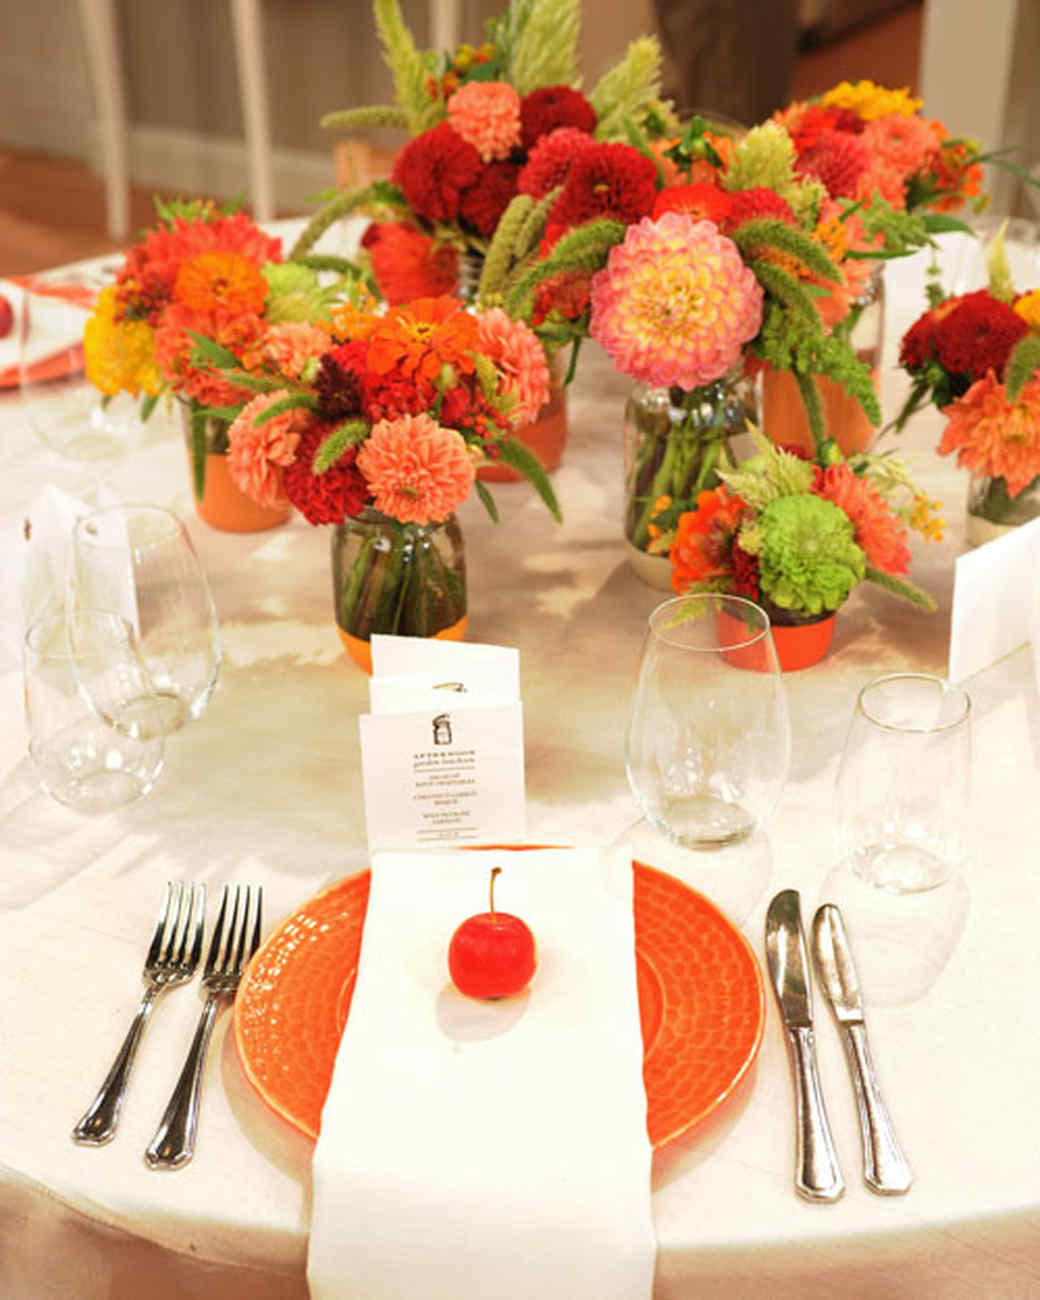 6002_091310_tablesetting_3.jpg